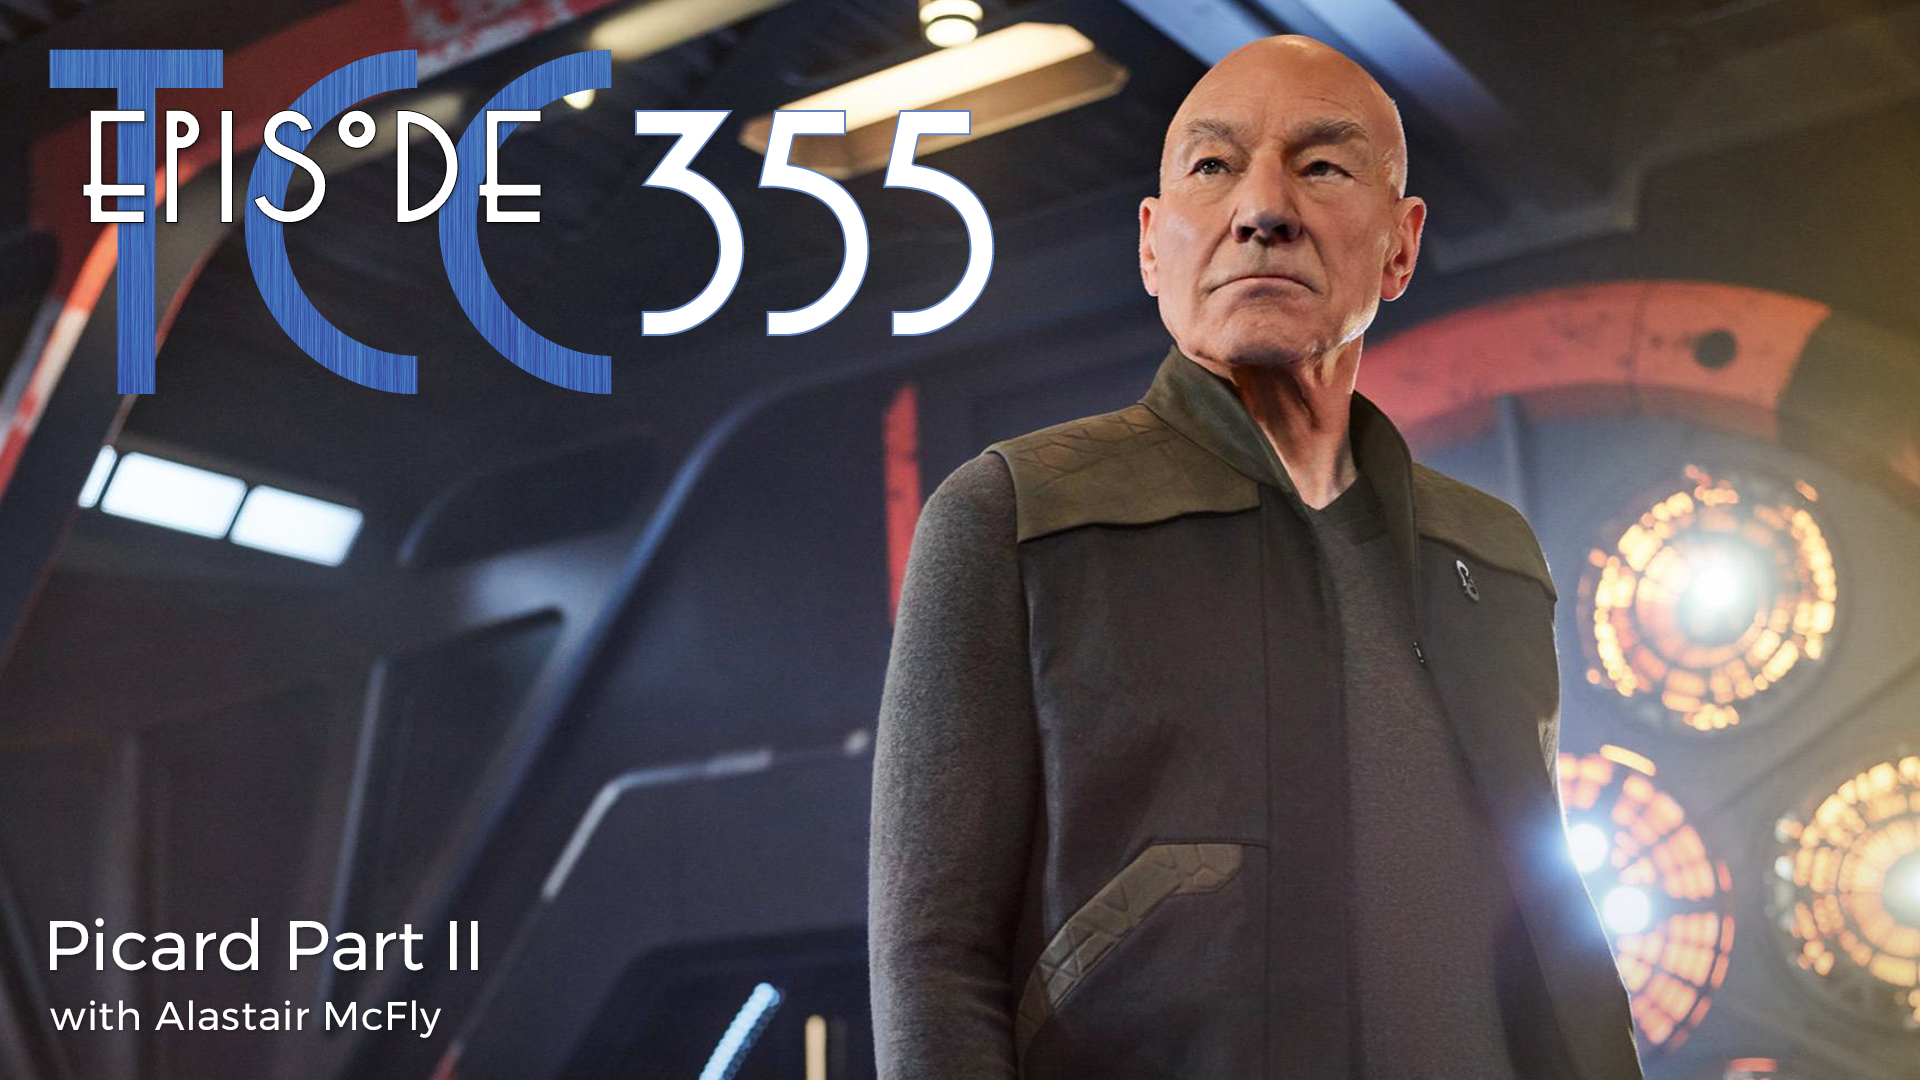 The Citadel Cafe 355: Picard Part II